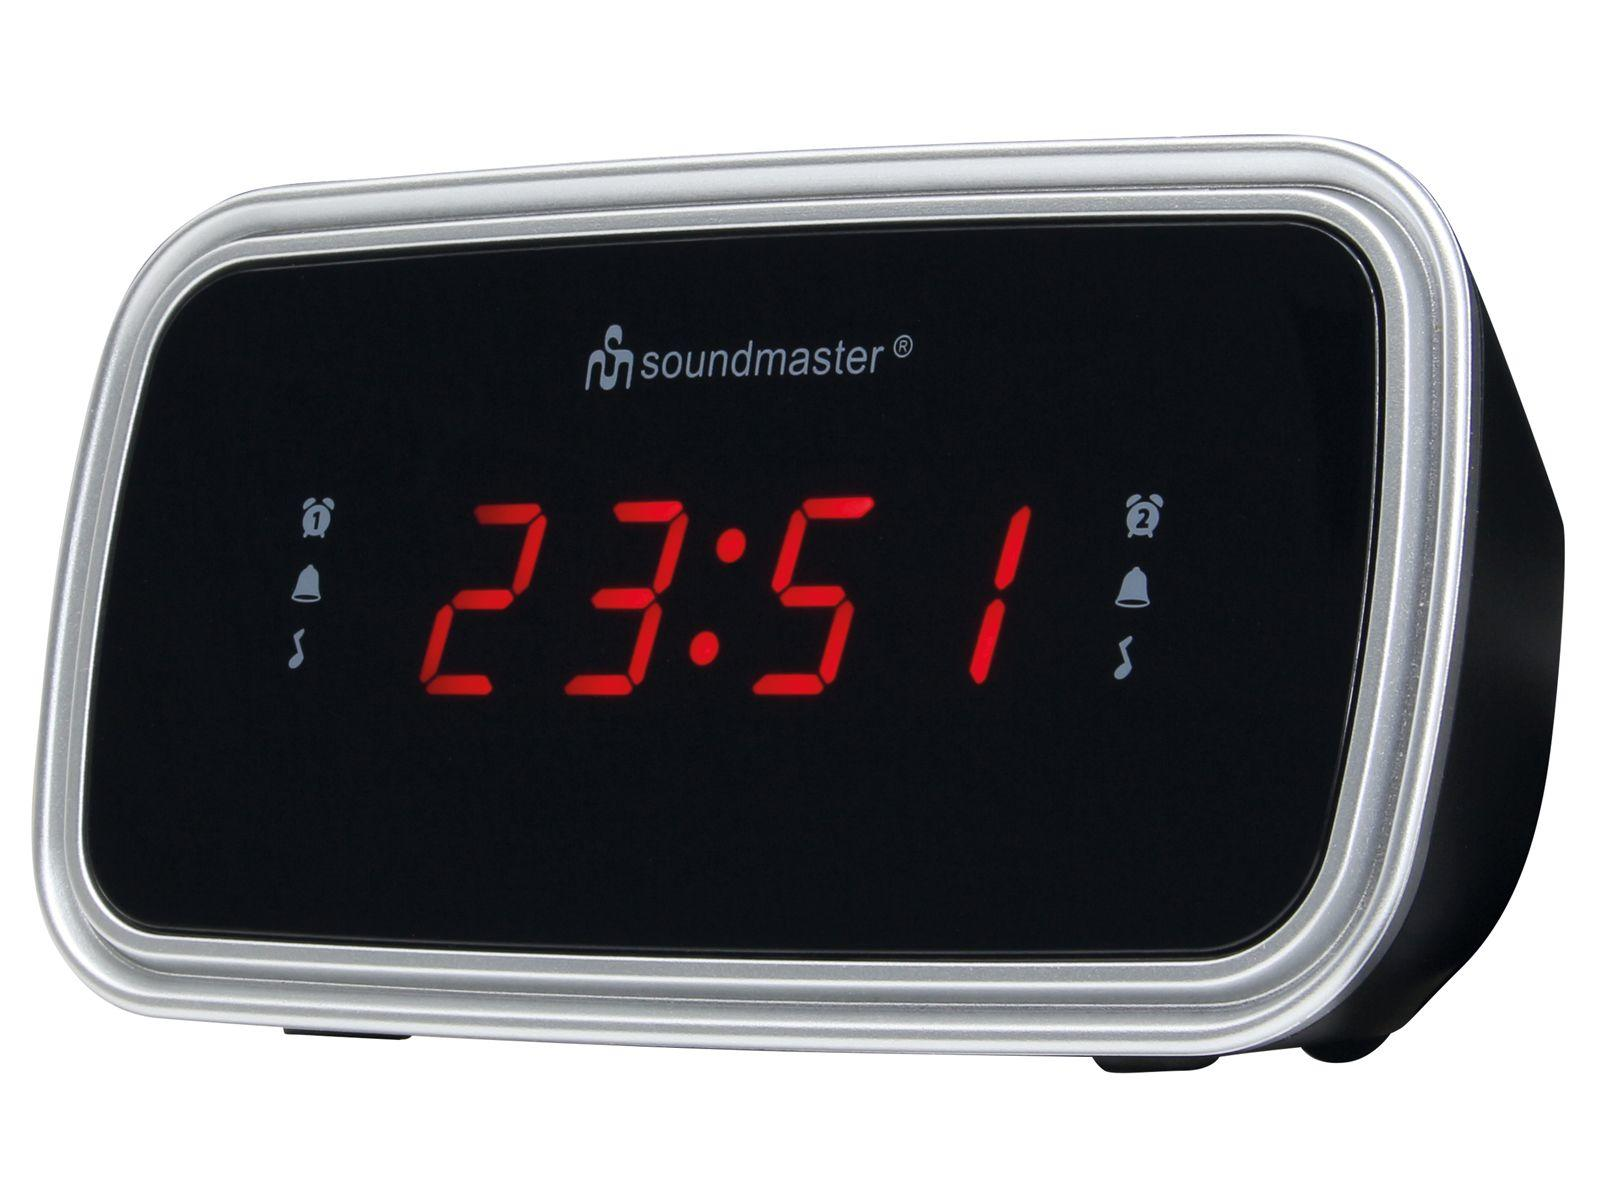 soundmaster UR106 Alarm Clock Radio